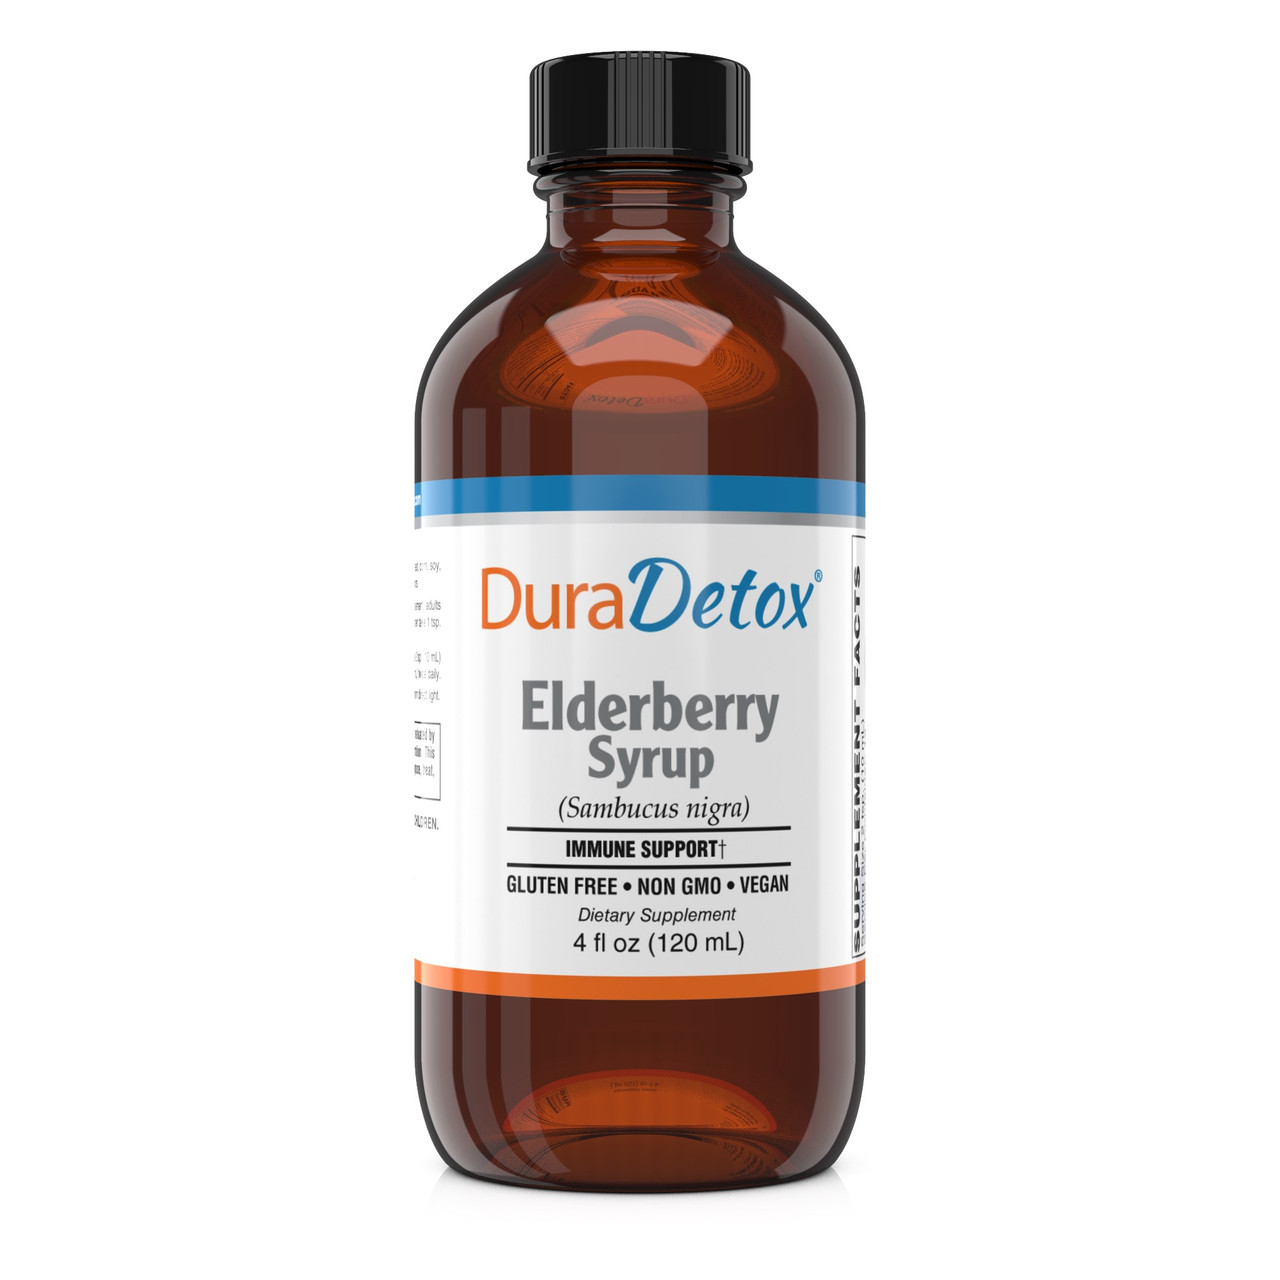 DuraDetox® Organic Elderberry Syrup - Provides 6,400mg of 100% certified organic, pure elderberry fruit extract per serving, with no sugar, artificial colors or flavors.